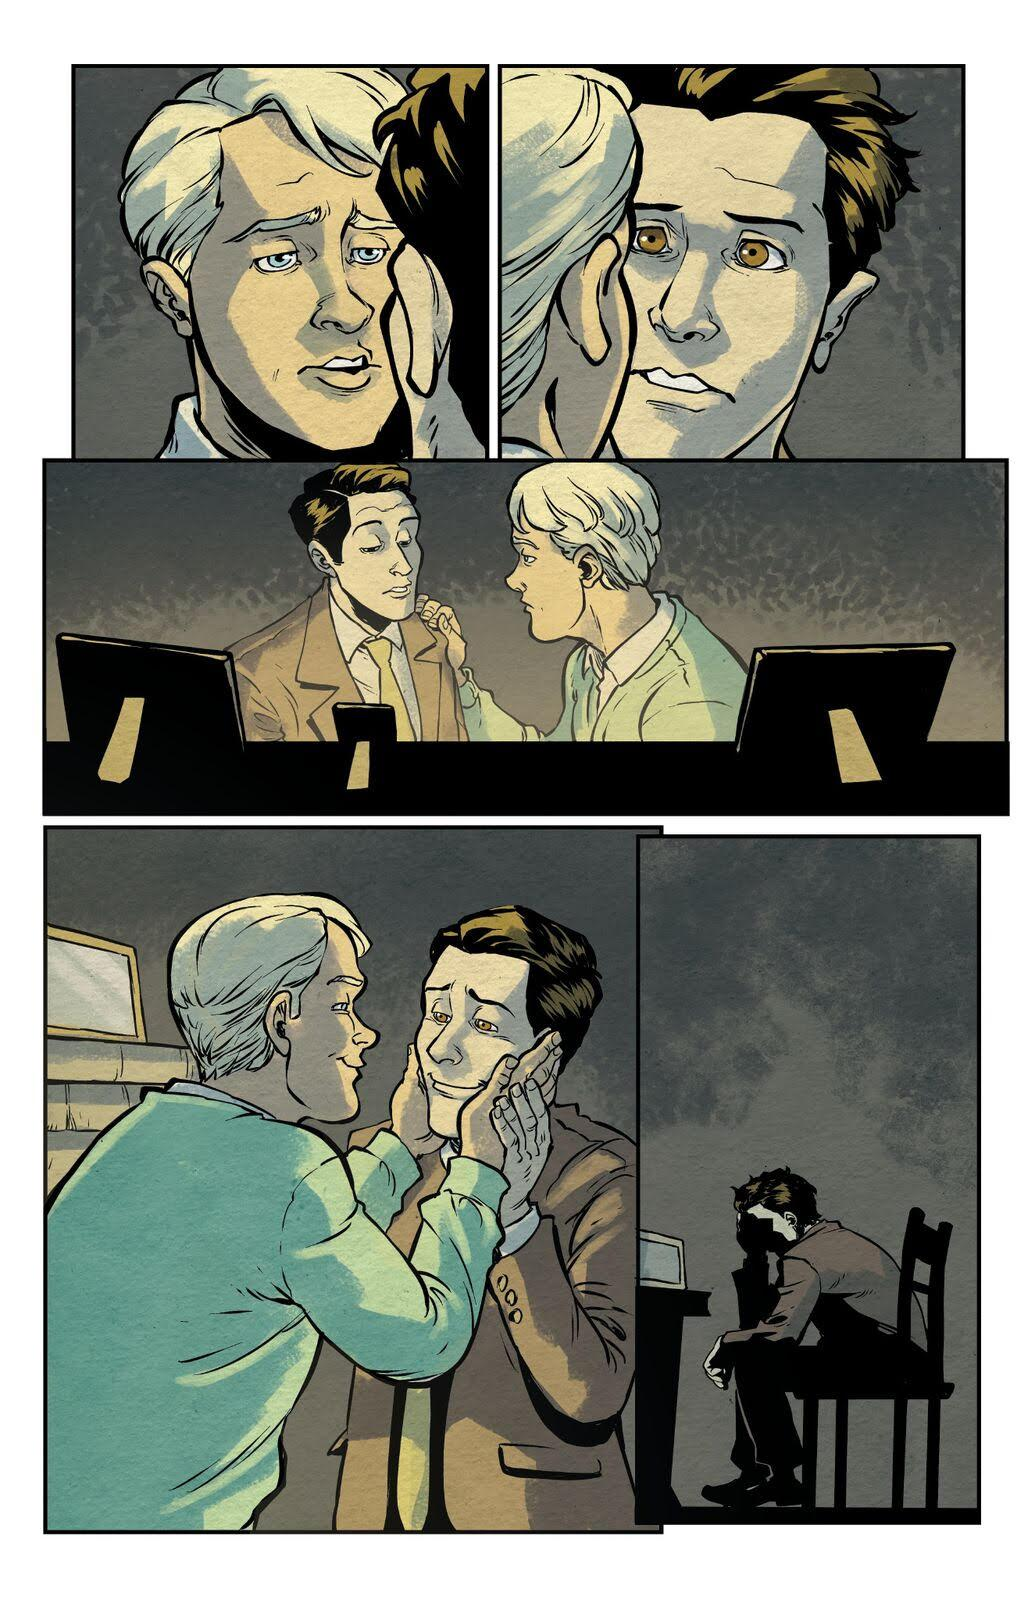 A page from 'Dash,' a comic from Northwest Press.